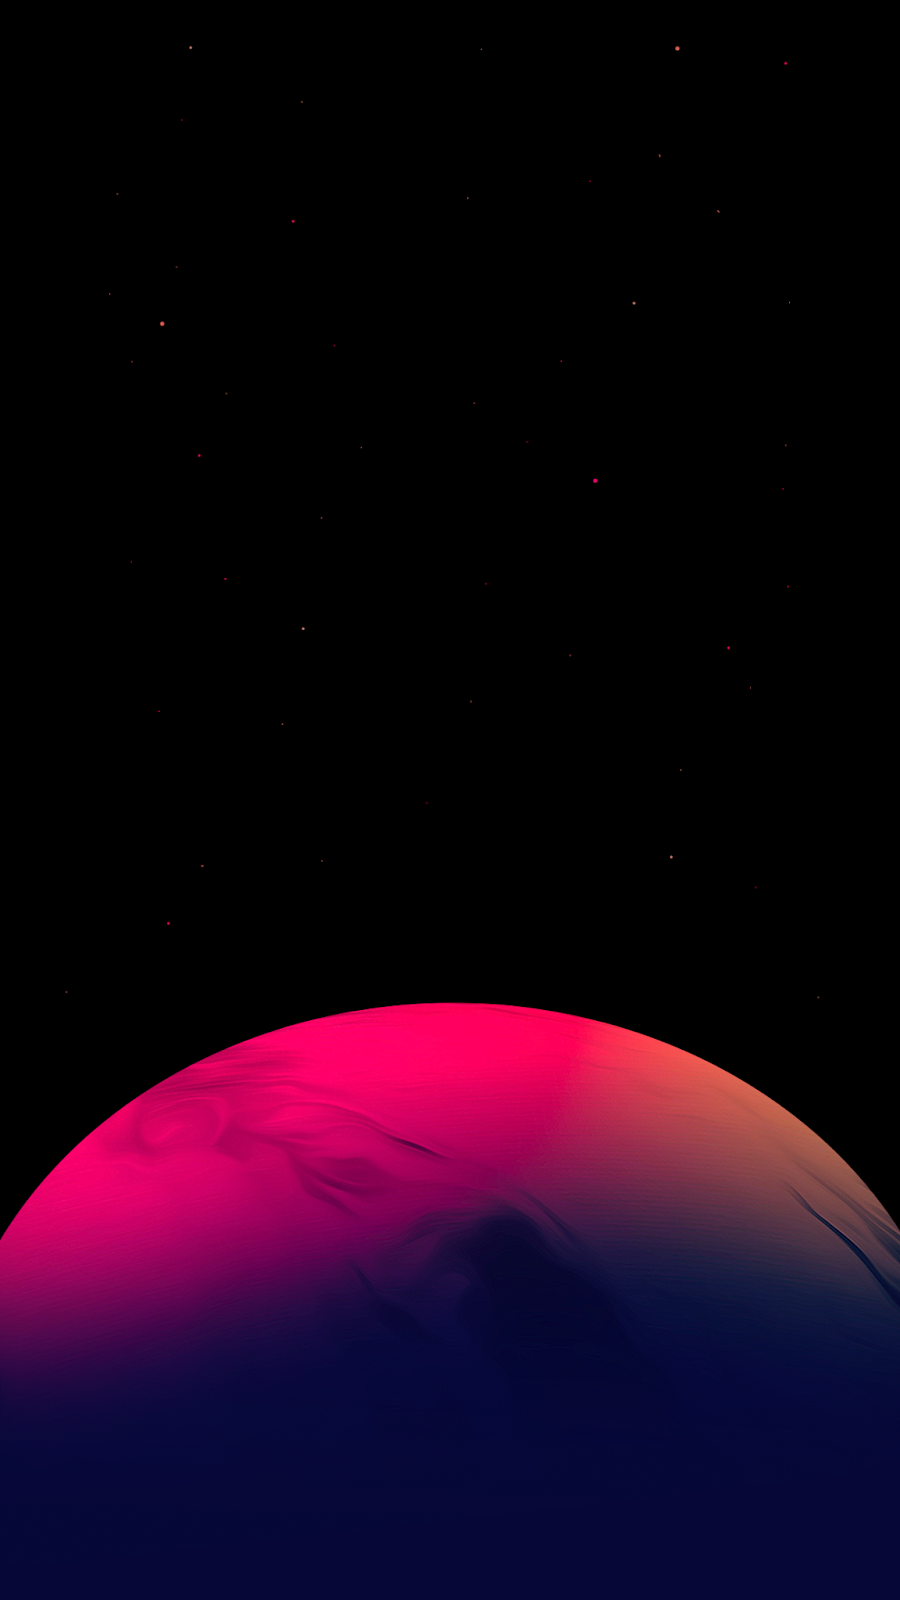 Iphone X Wallpaper Planet Hd– HD HQ Wallpapers Download